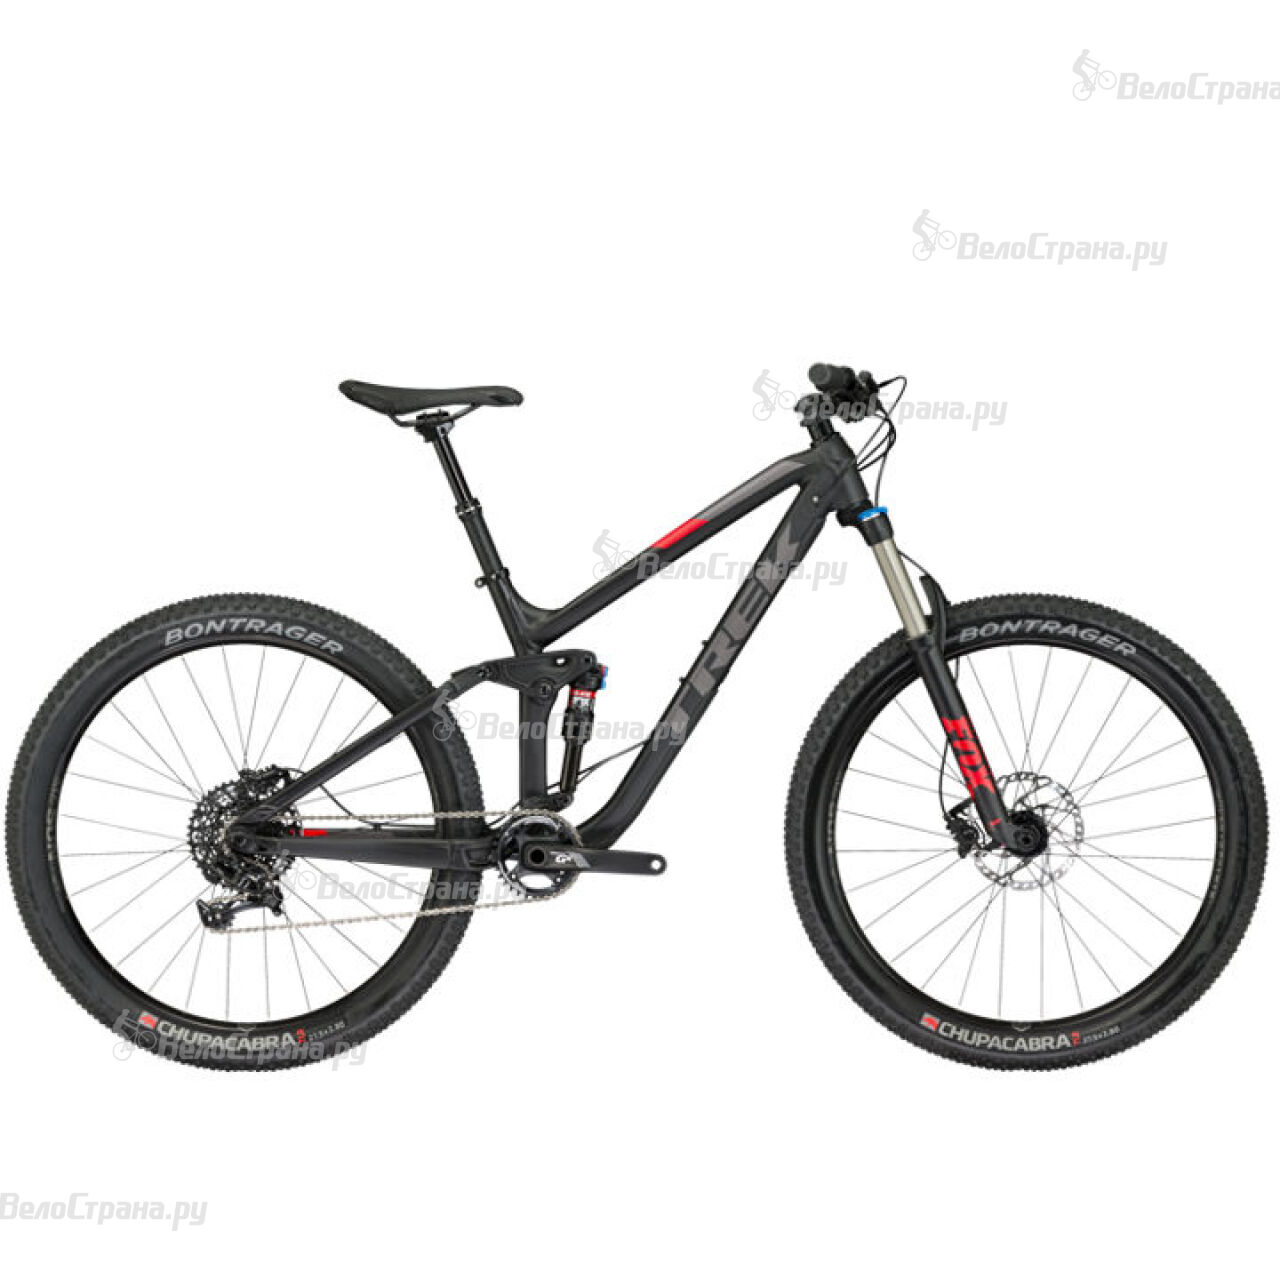 Велосипед Trek Fuel EX 8 27.5 PLUS (2017)